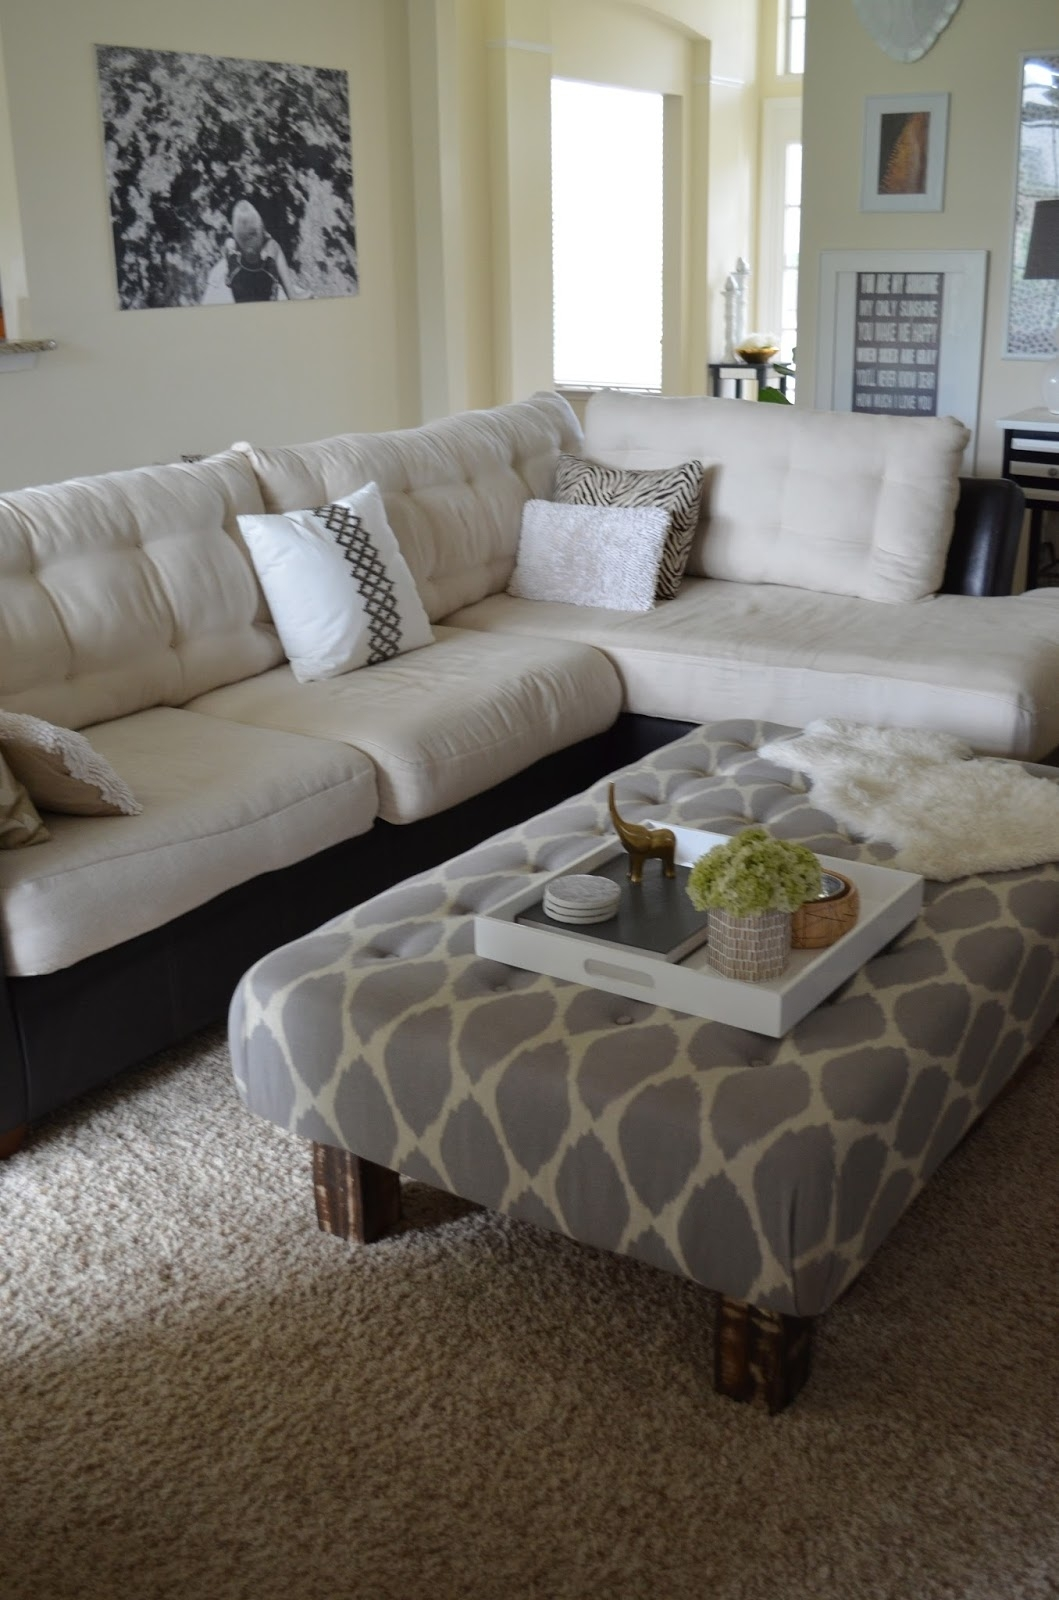 crate and barrel sofas canada ebay sofa covers australia 10 ideas of kamloops sectional